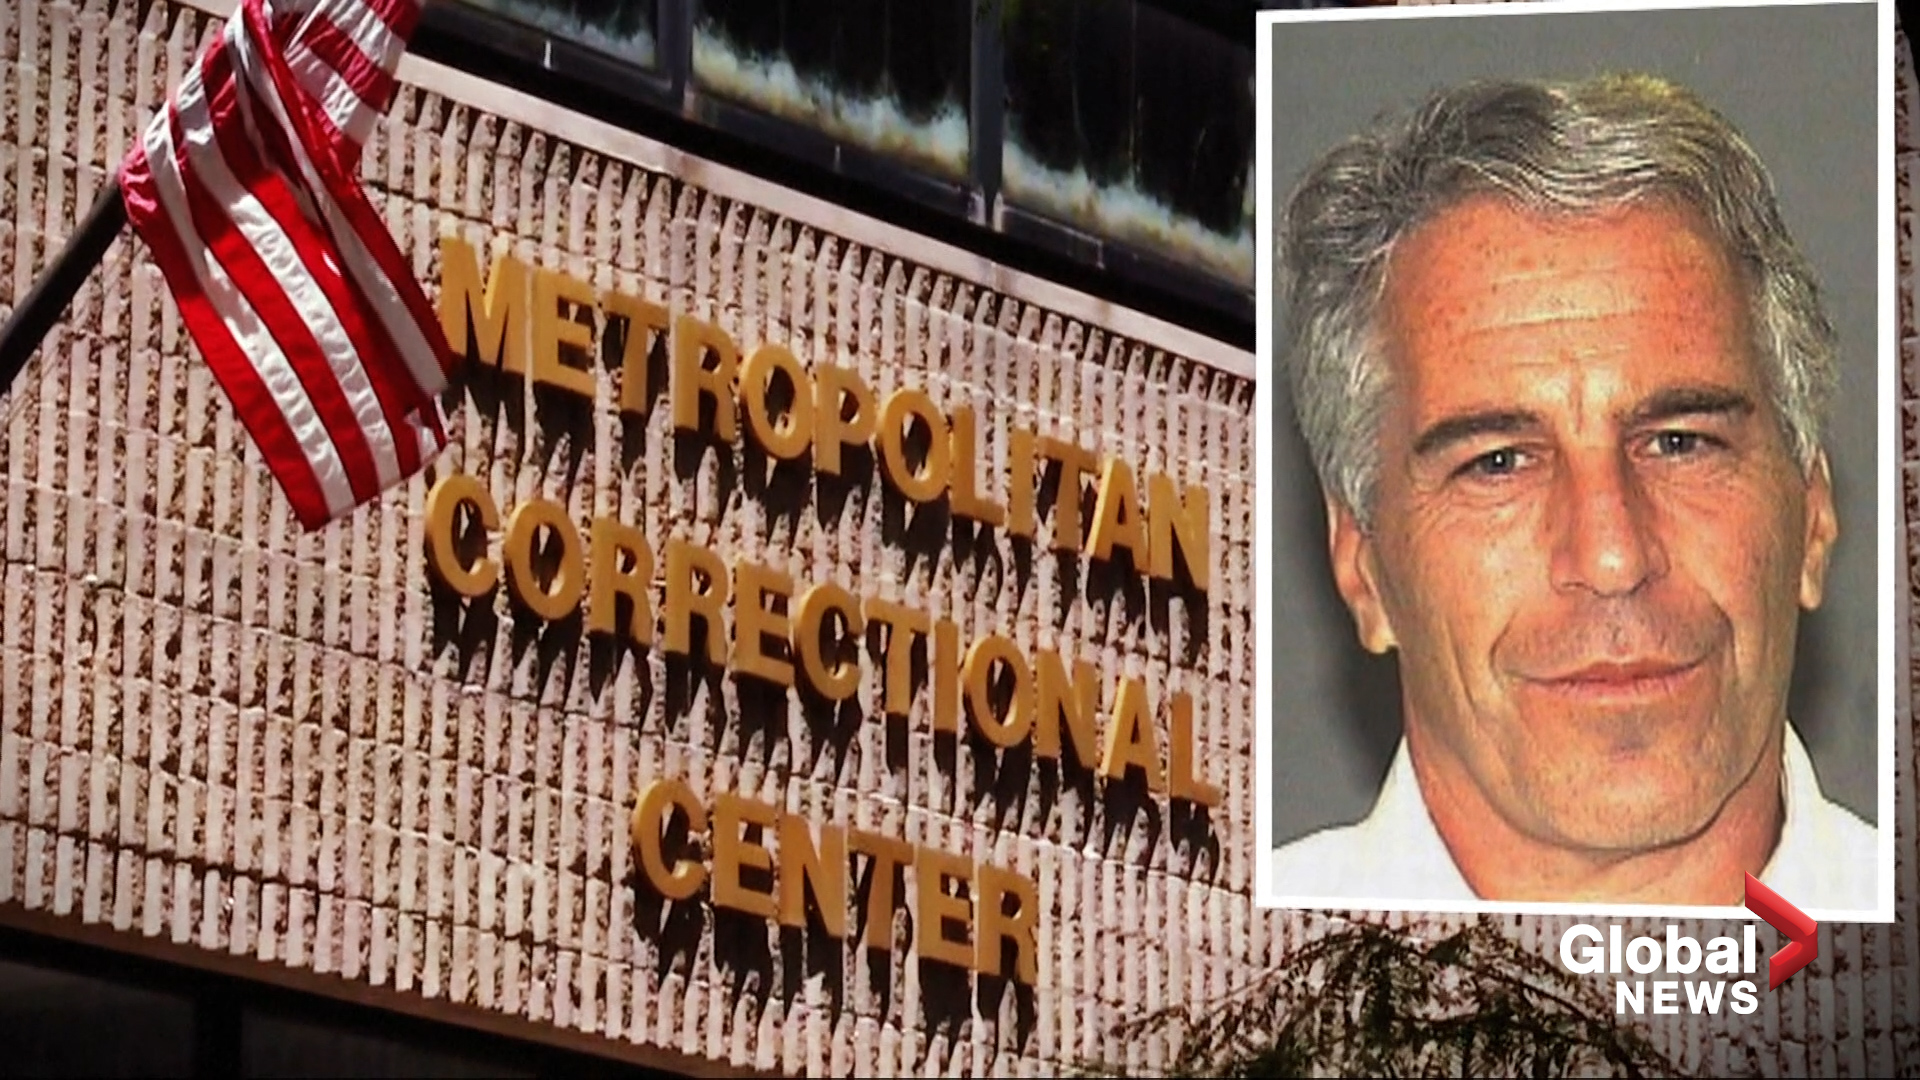 Prison staff members subpoenaed in Epstein probe